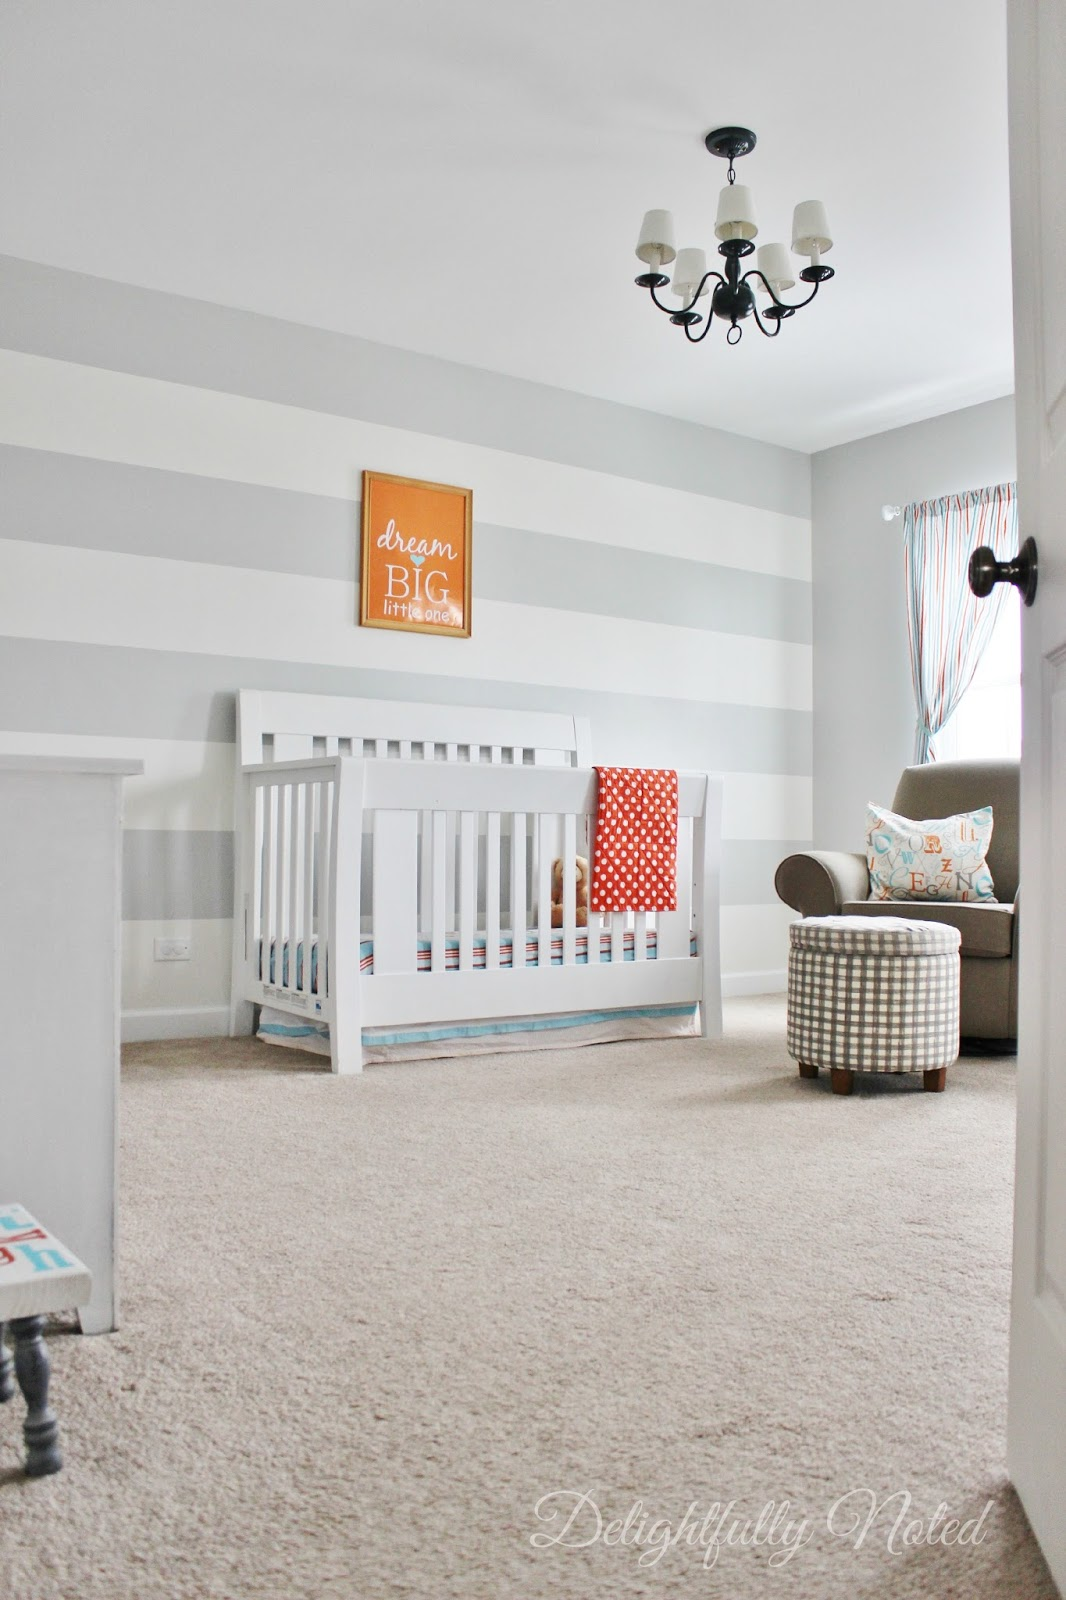 Delightfully Noted Home Tour - Modern Fresh Farmhouse Decorating Ideas - Nursery Striped Painted Wall